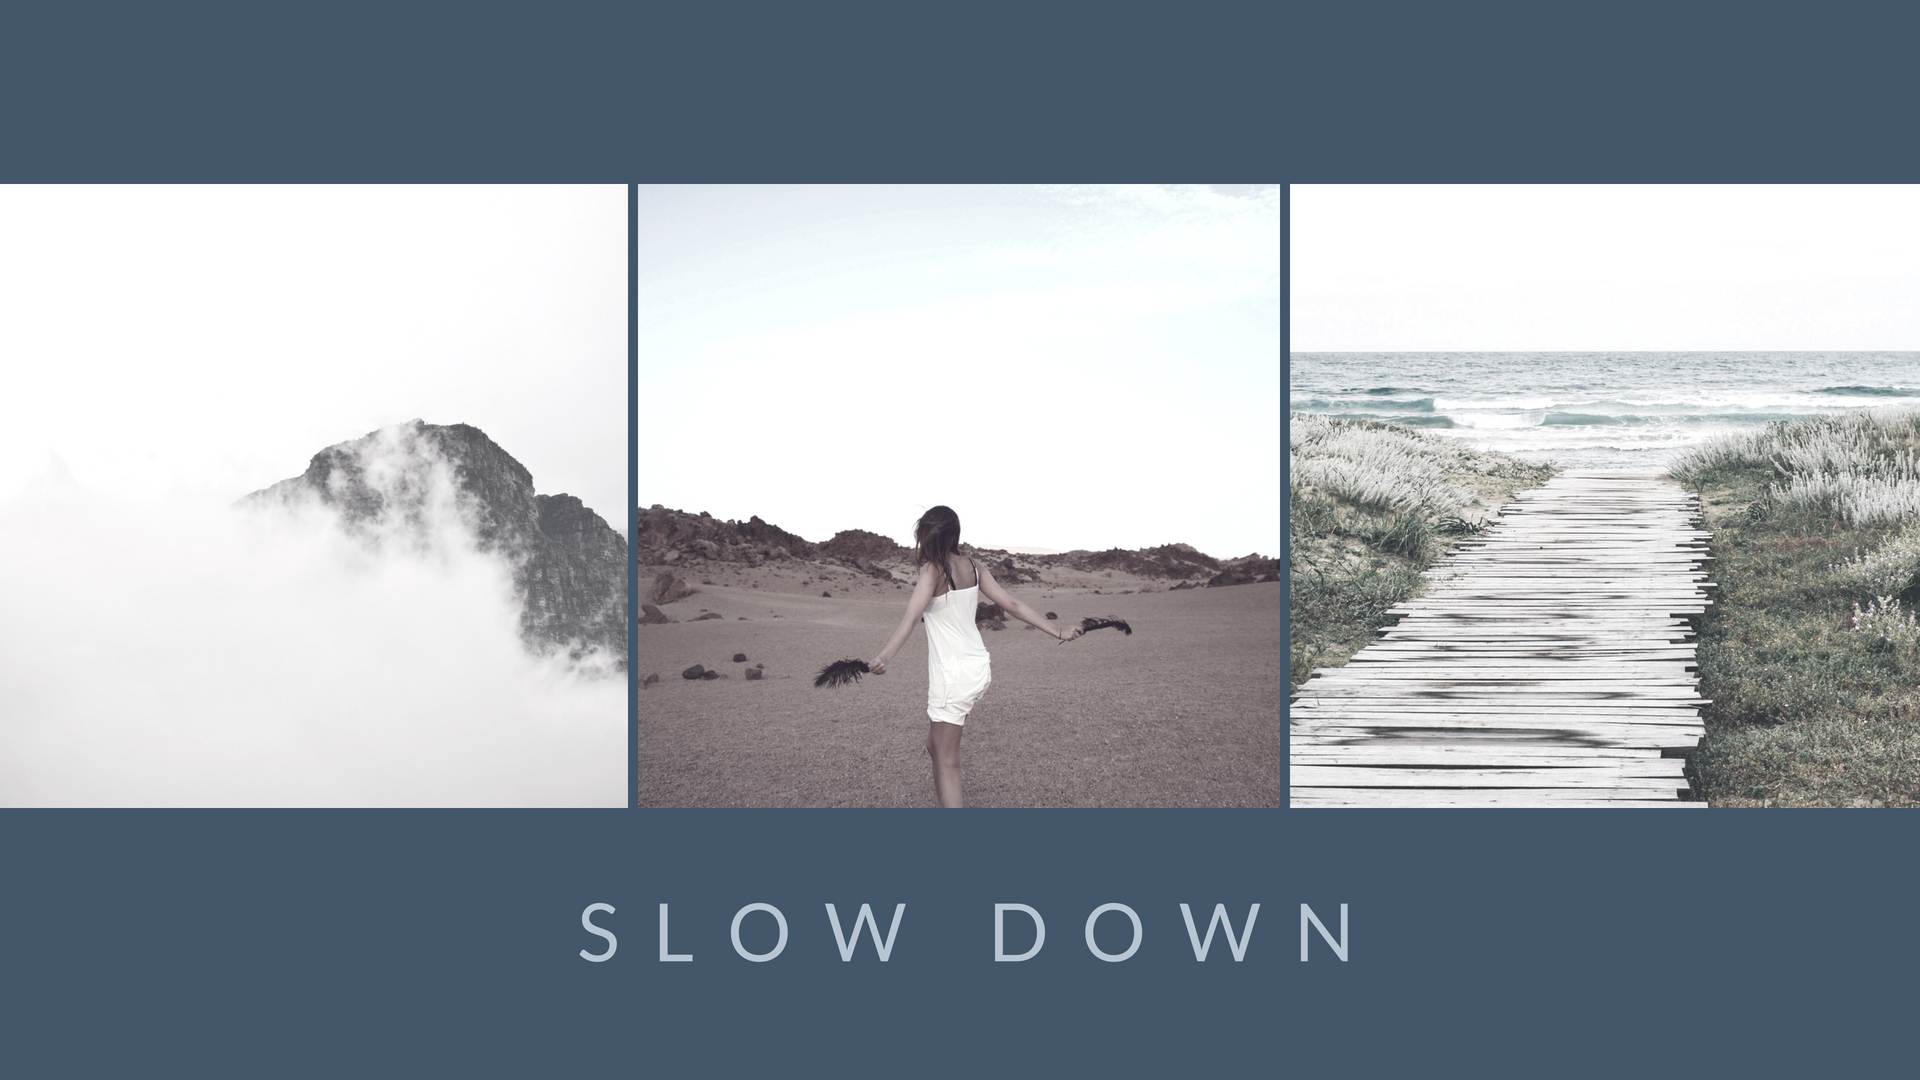 Type 8 - Slow Down